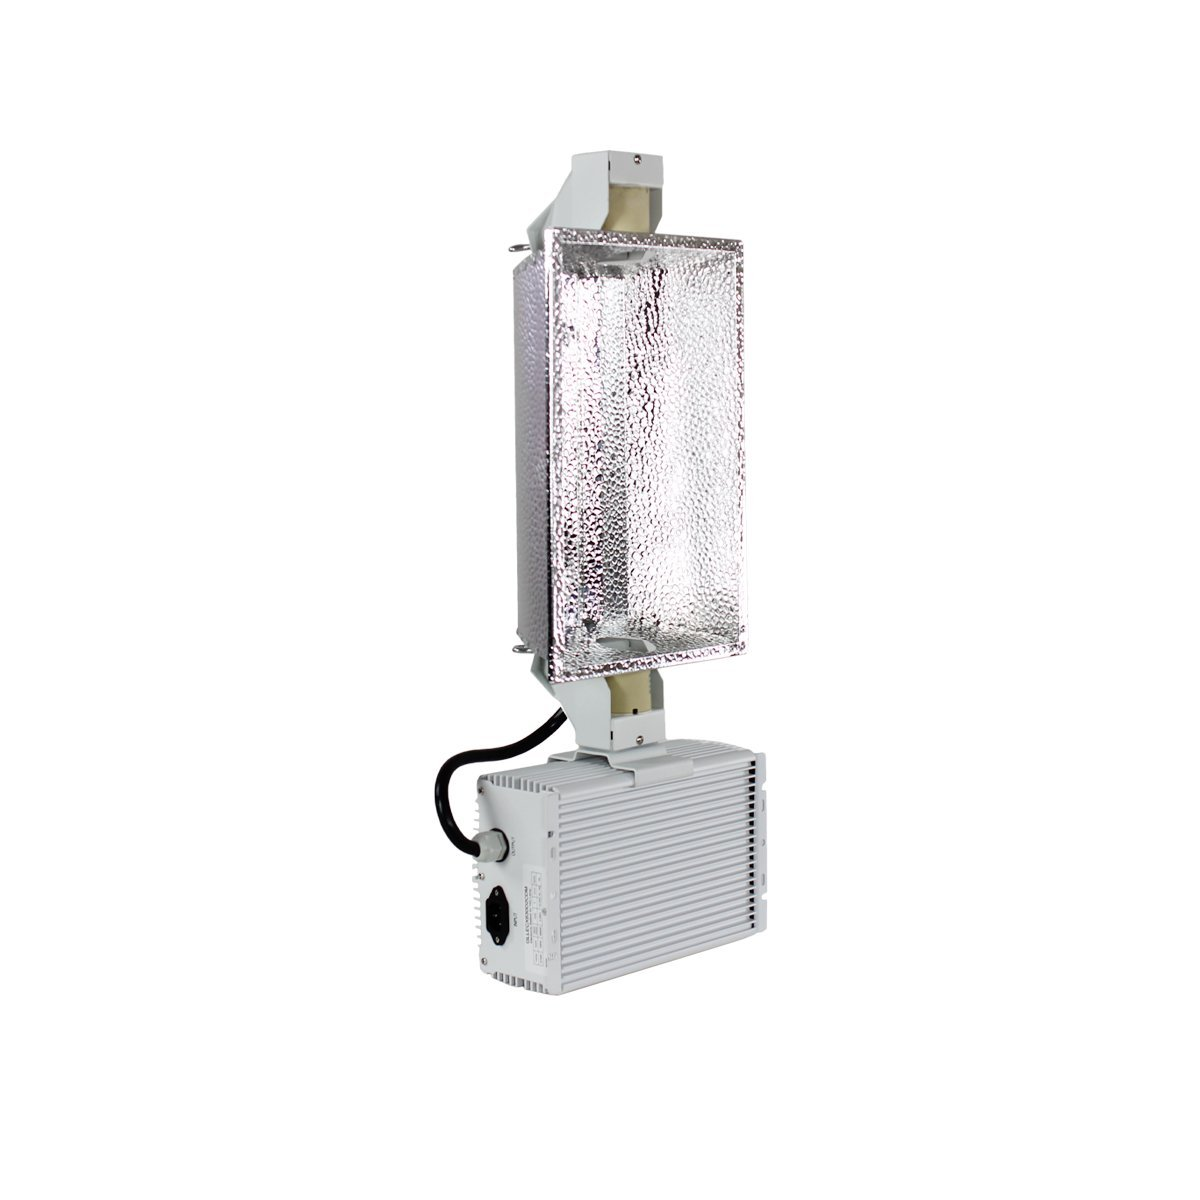 iPower 630W Double Lamp Ceramic Metal Halide Grow Light System Kits 240V, CMH Bulb is NOT included by iPower (Image #2)